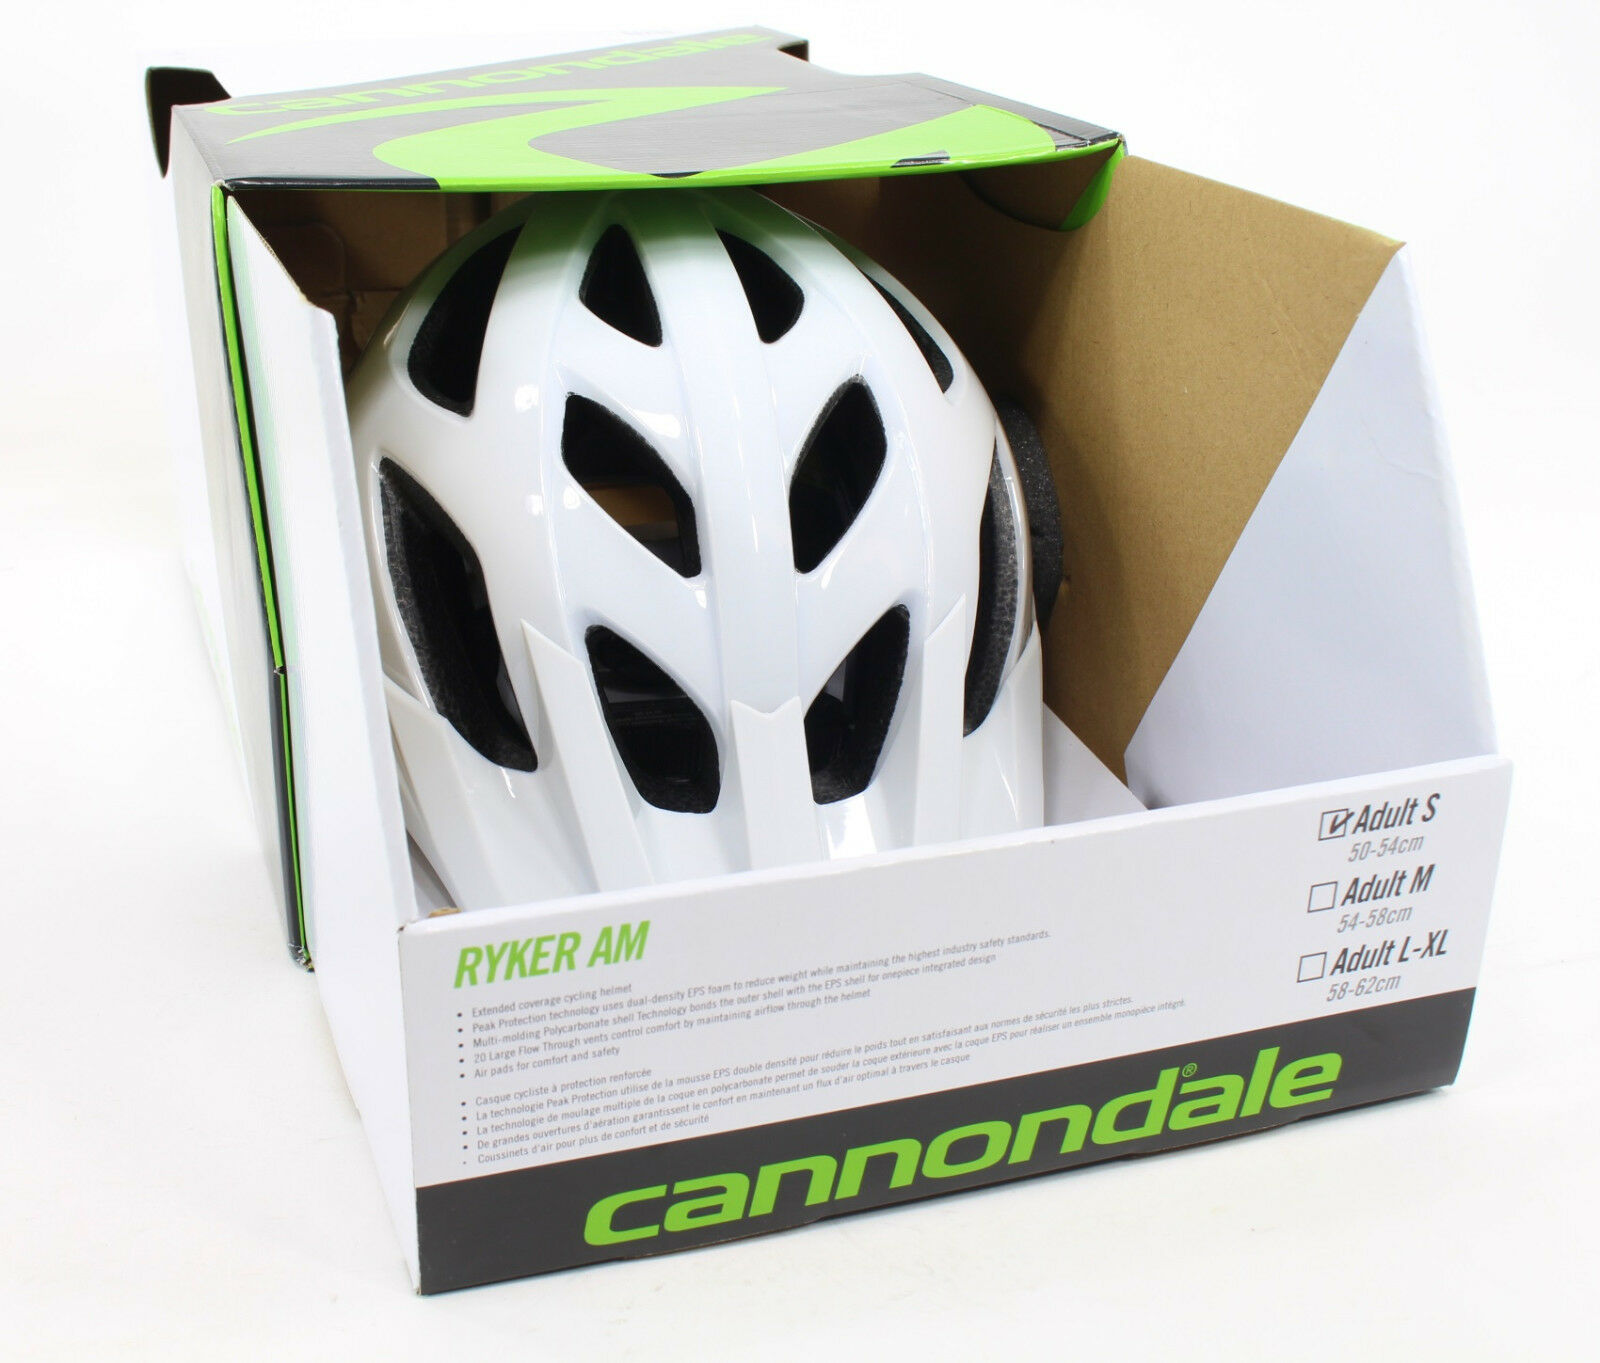 Cannondale Ryker AM Bicycle Helmet, White, 50-54cm Small